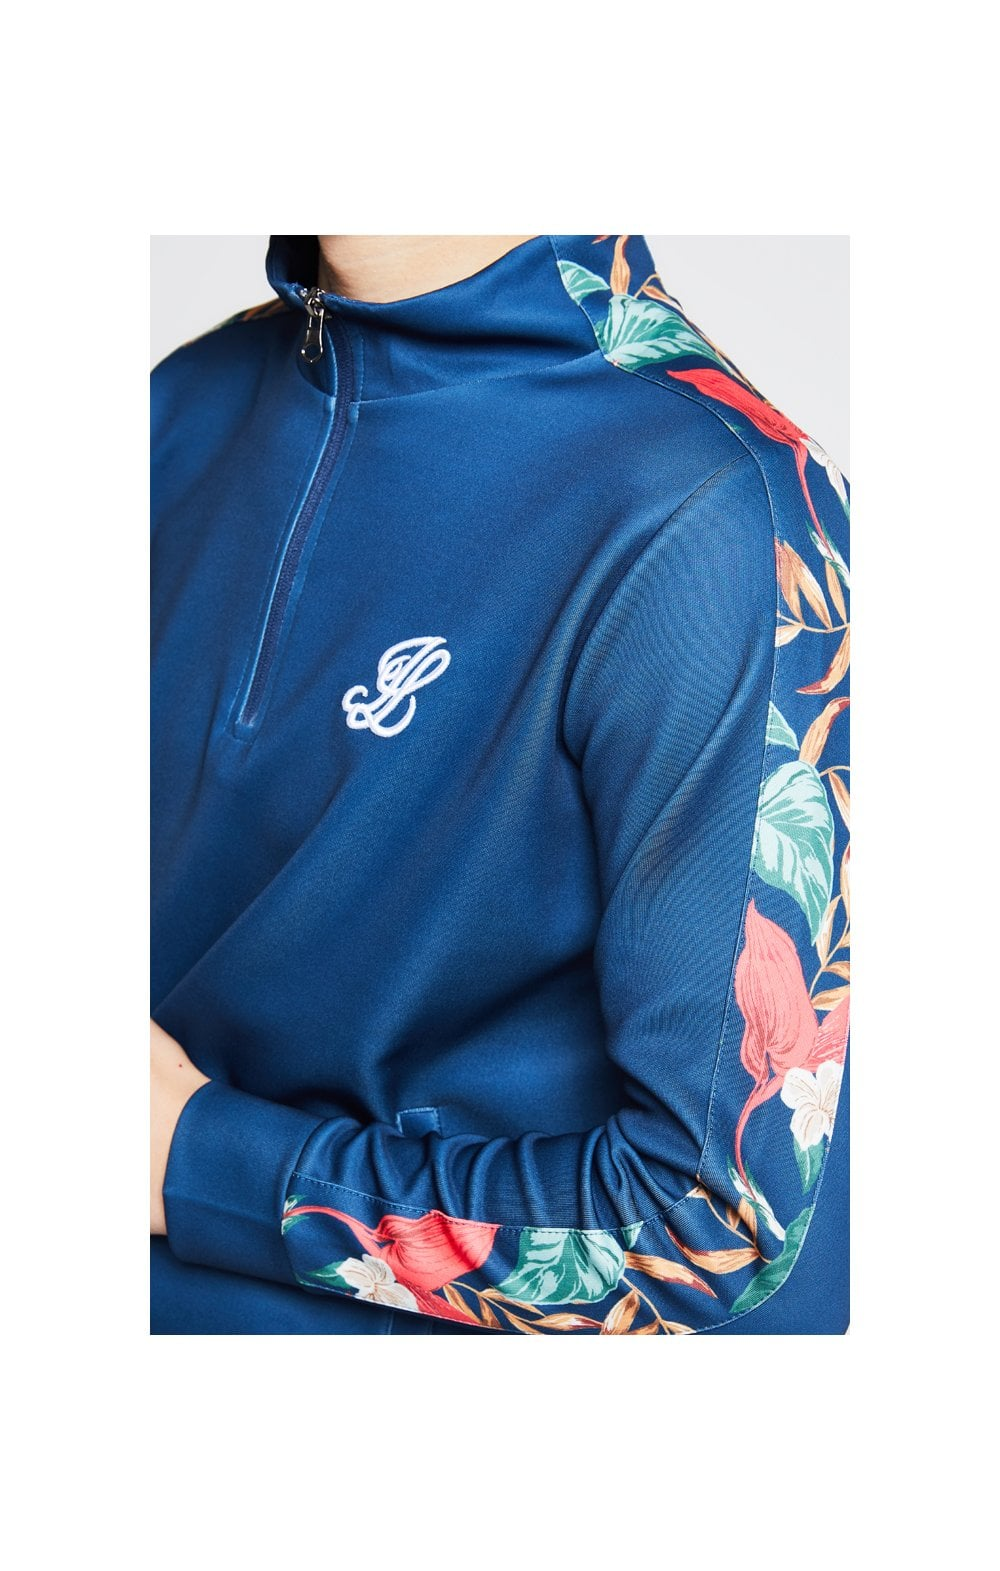 Load image into Gallery viewer, Illusive London Panel Funnel Neck 1/4 Zip Hoodie - Teal & Tropical Leaf (1)